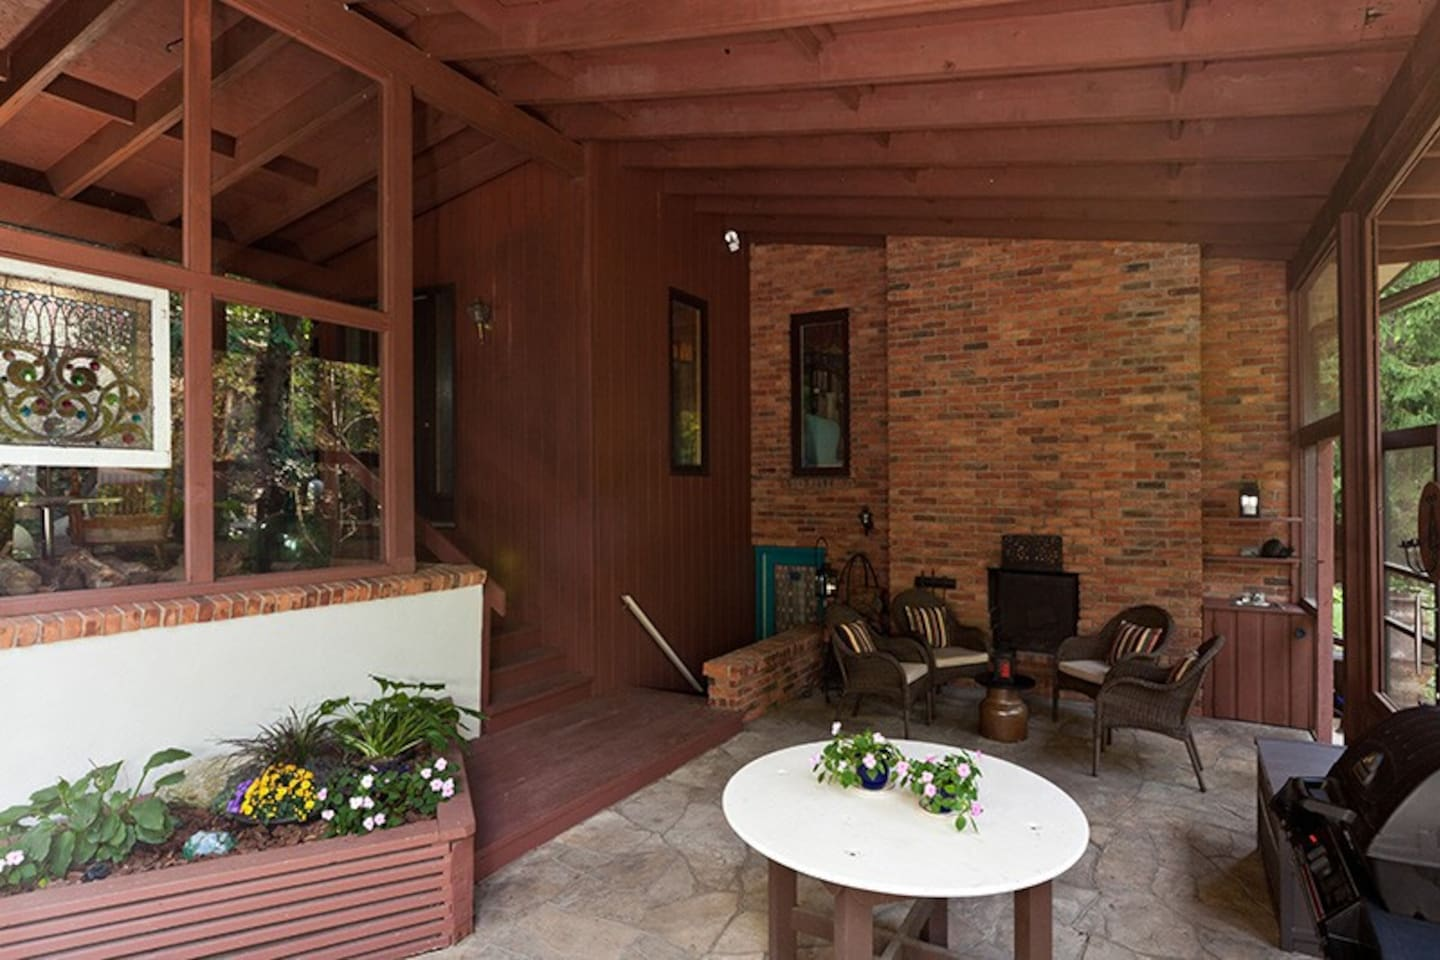 One of the things you're really going to love about staying here is how peaceful and rejuvenating our environment is and how much you'll relax.  Covered terrace, outdoor fireplace, BBQ.  It's an absolutely lovely spot to get out from under the hot sun or to enjoy a rain shower.